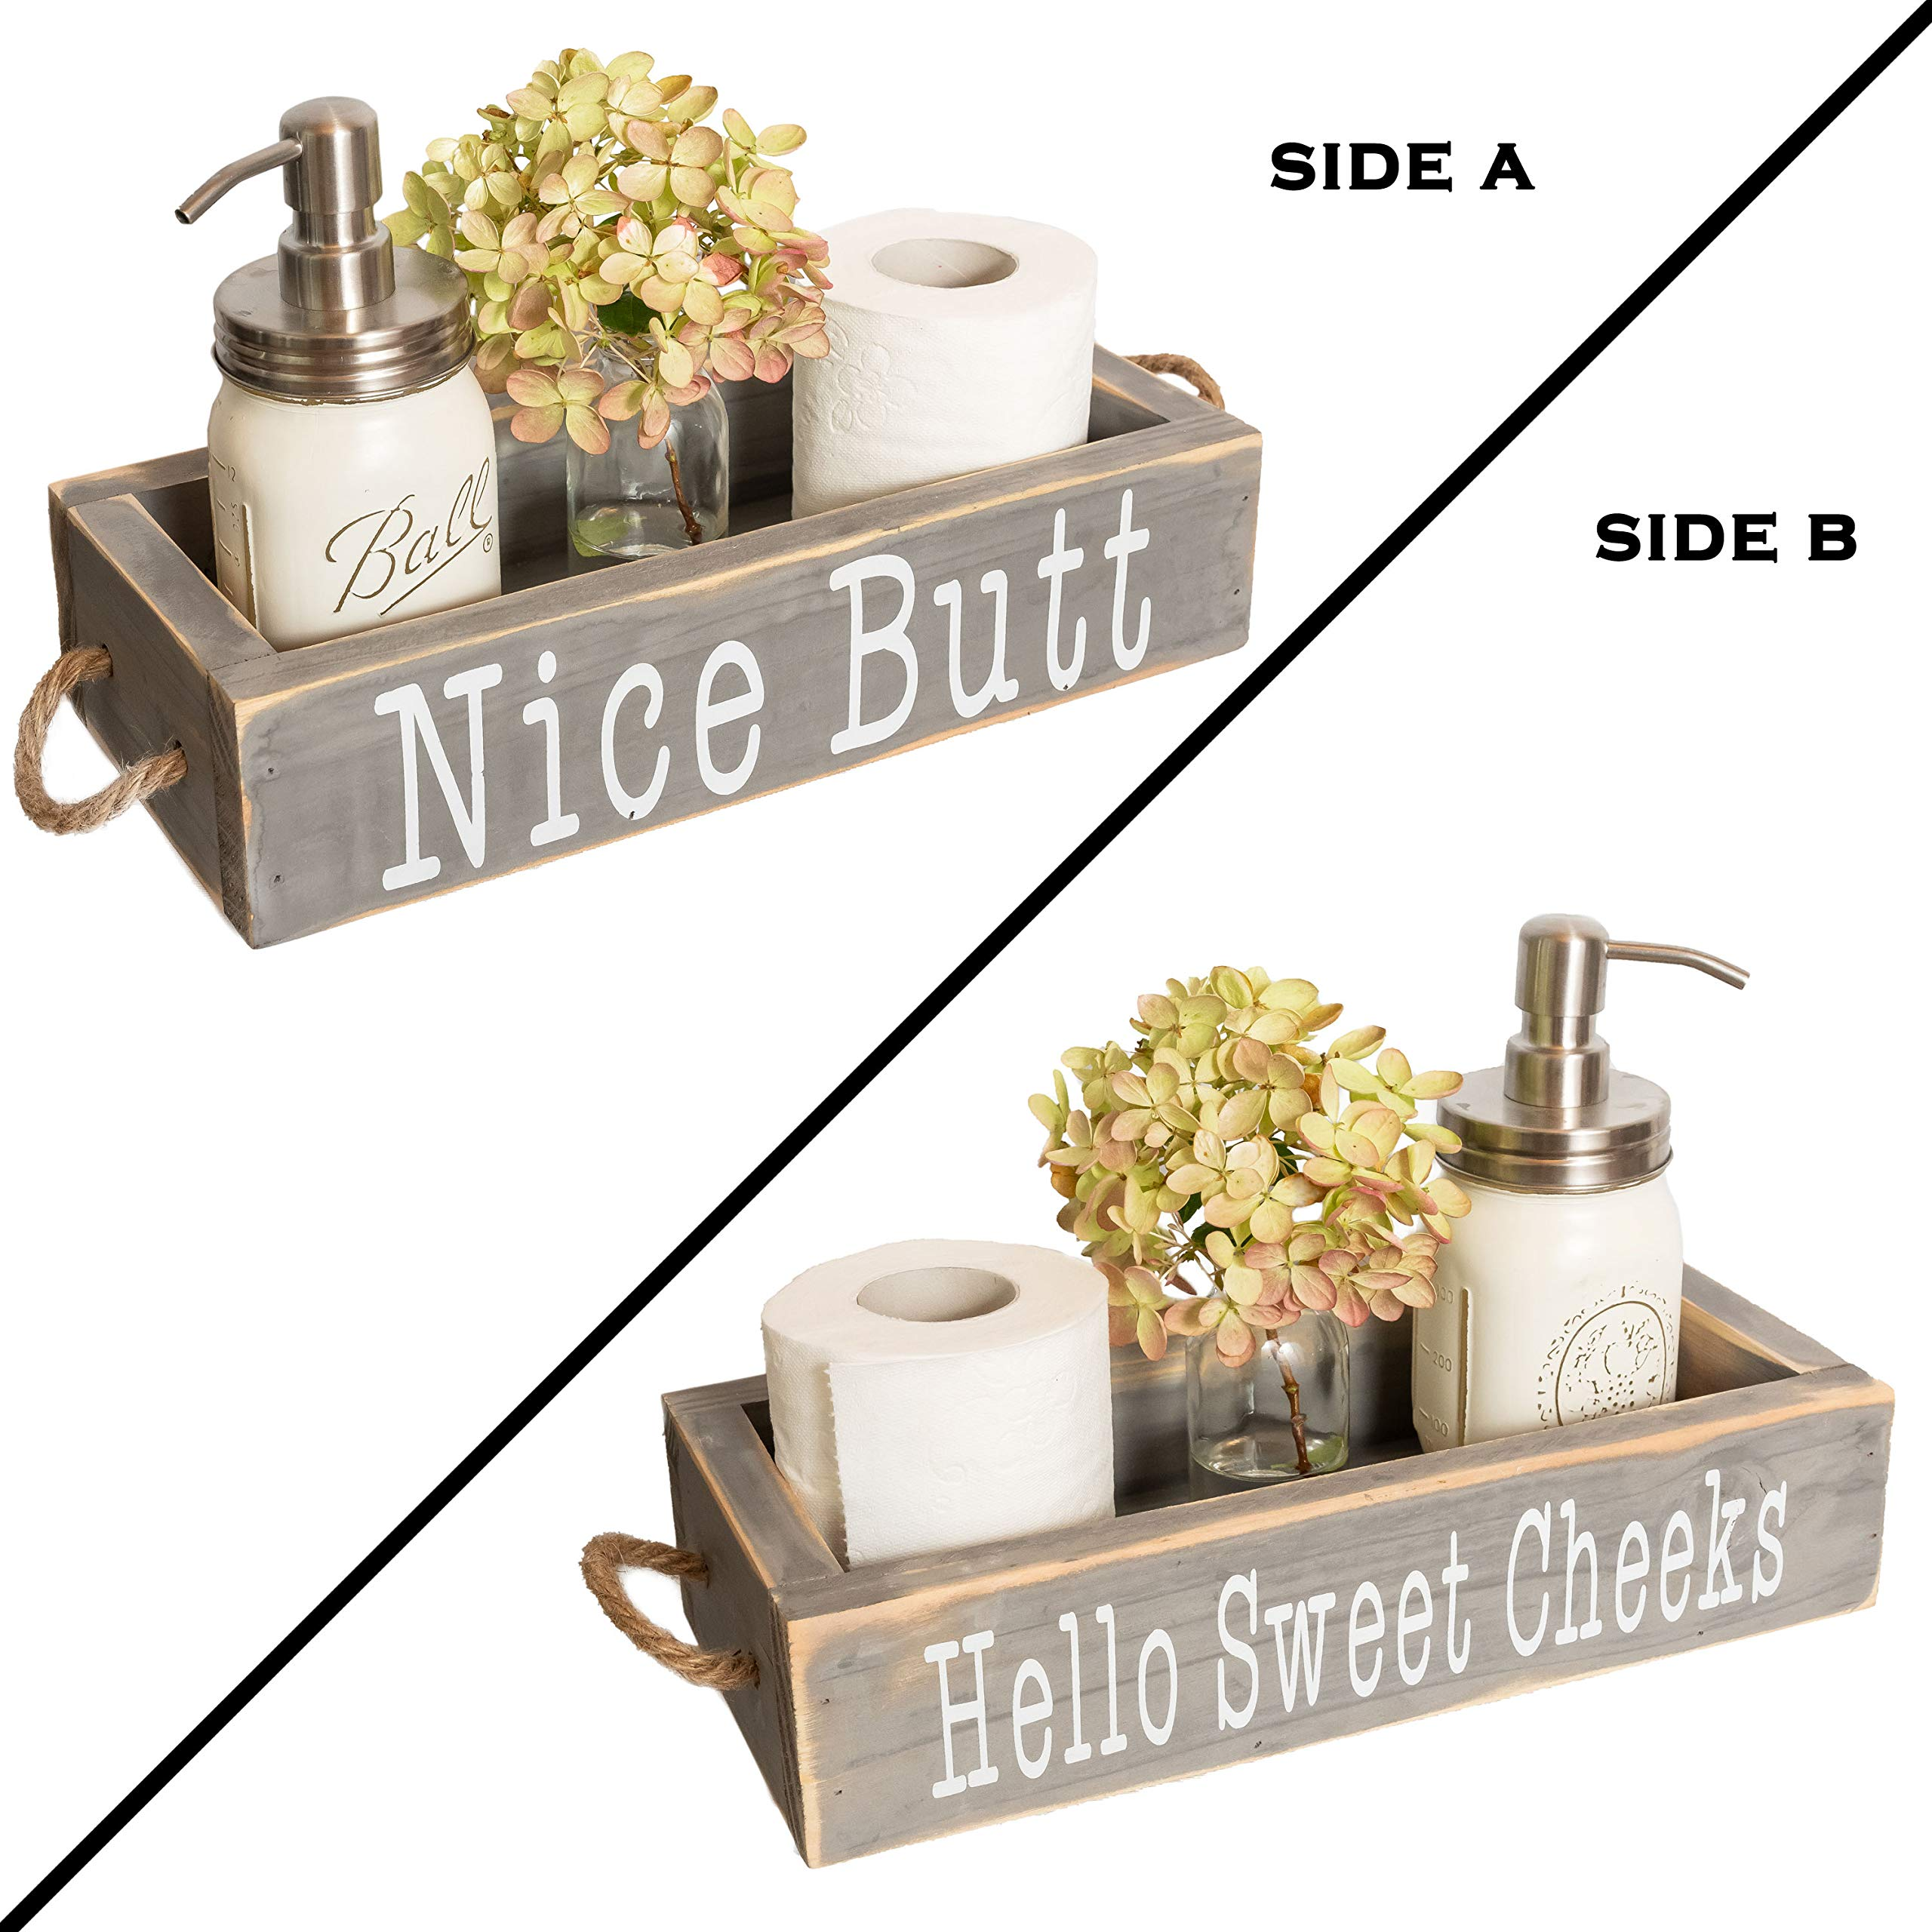 Nice Butt Bathroom Decor Box, 2 Sides with Funny Sayings - Funny Toilet Paper Holder Perfect for Farmhouse Bathroom Decor, Toilet Paper Storage, Rustic Bathroom Decor, or Diaper Organizer (Grey)